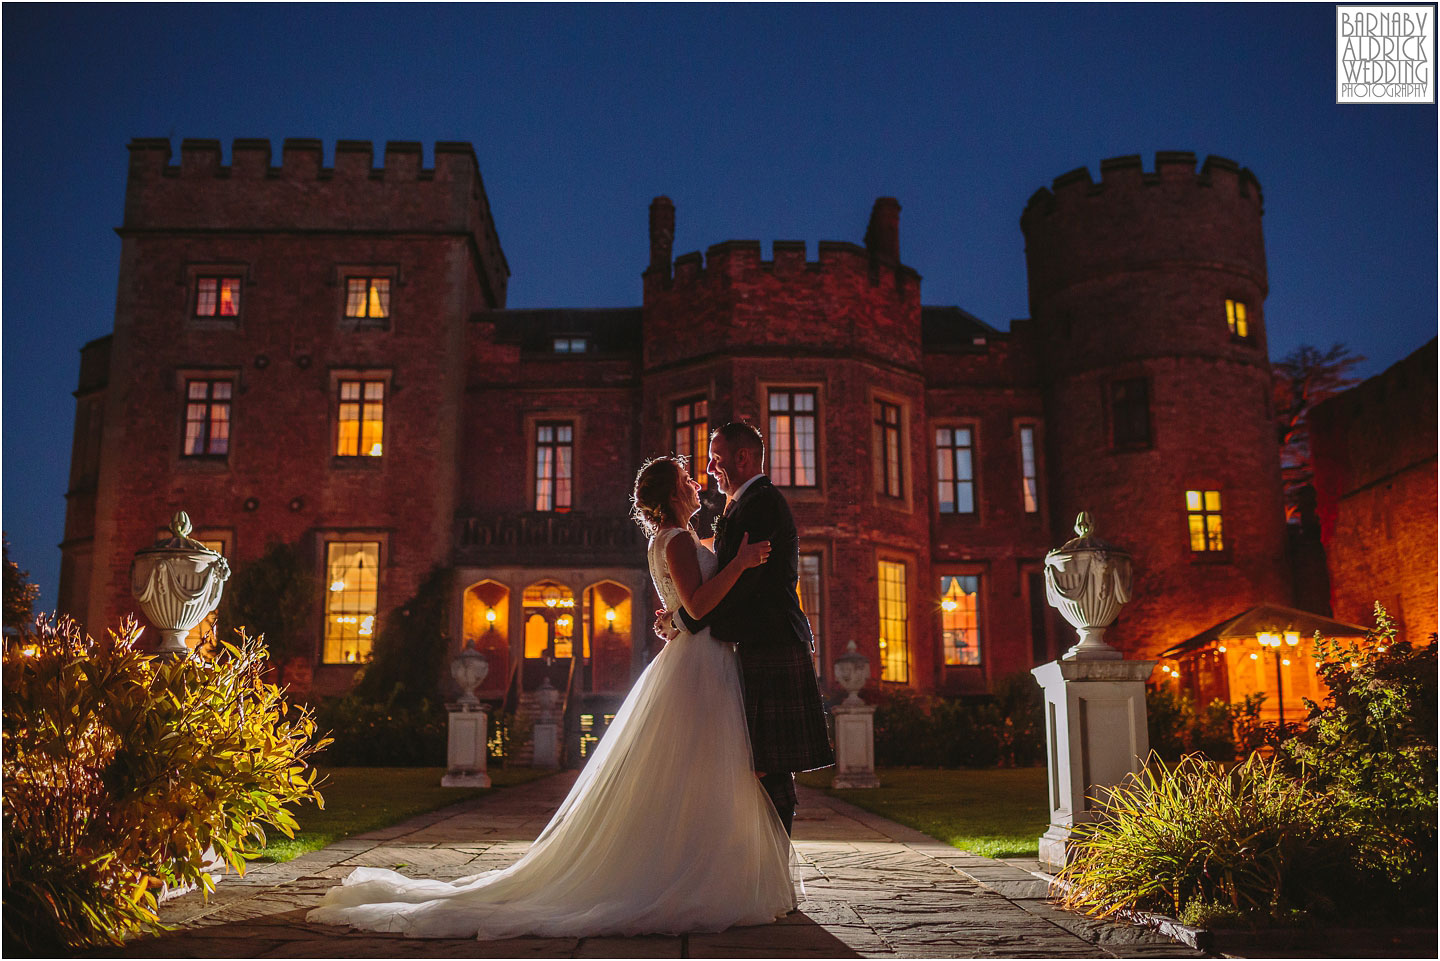 Evening flash couple portraits at a wedding at Rowton Castle, Shropshire Wedding Photographer, Shrewsbury wedding venue, Amazing UK Castle Wedding